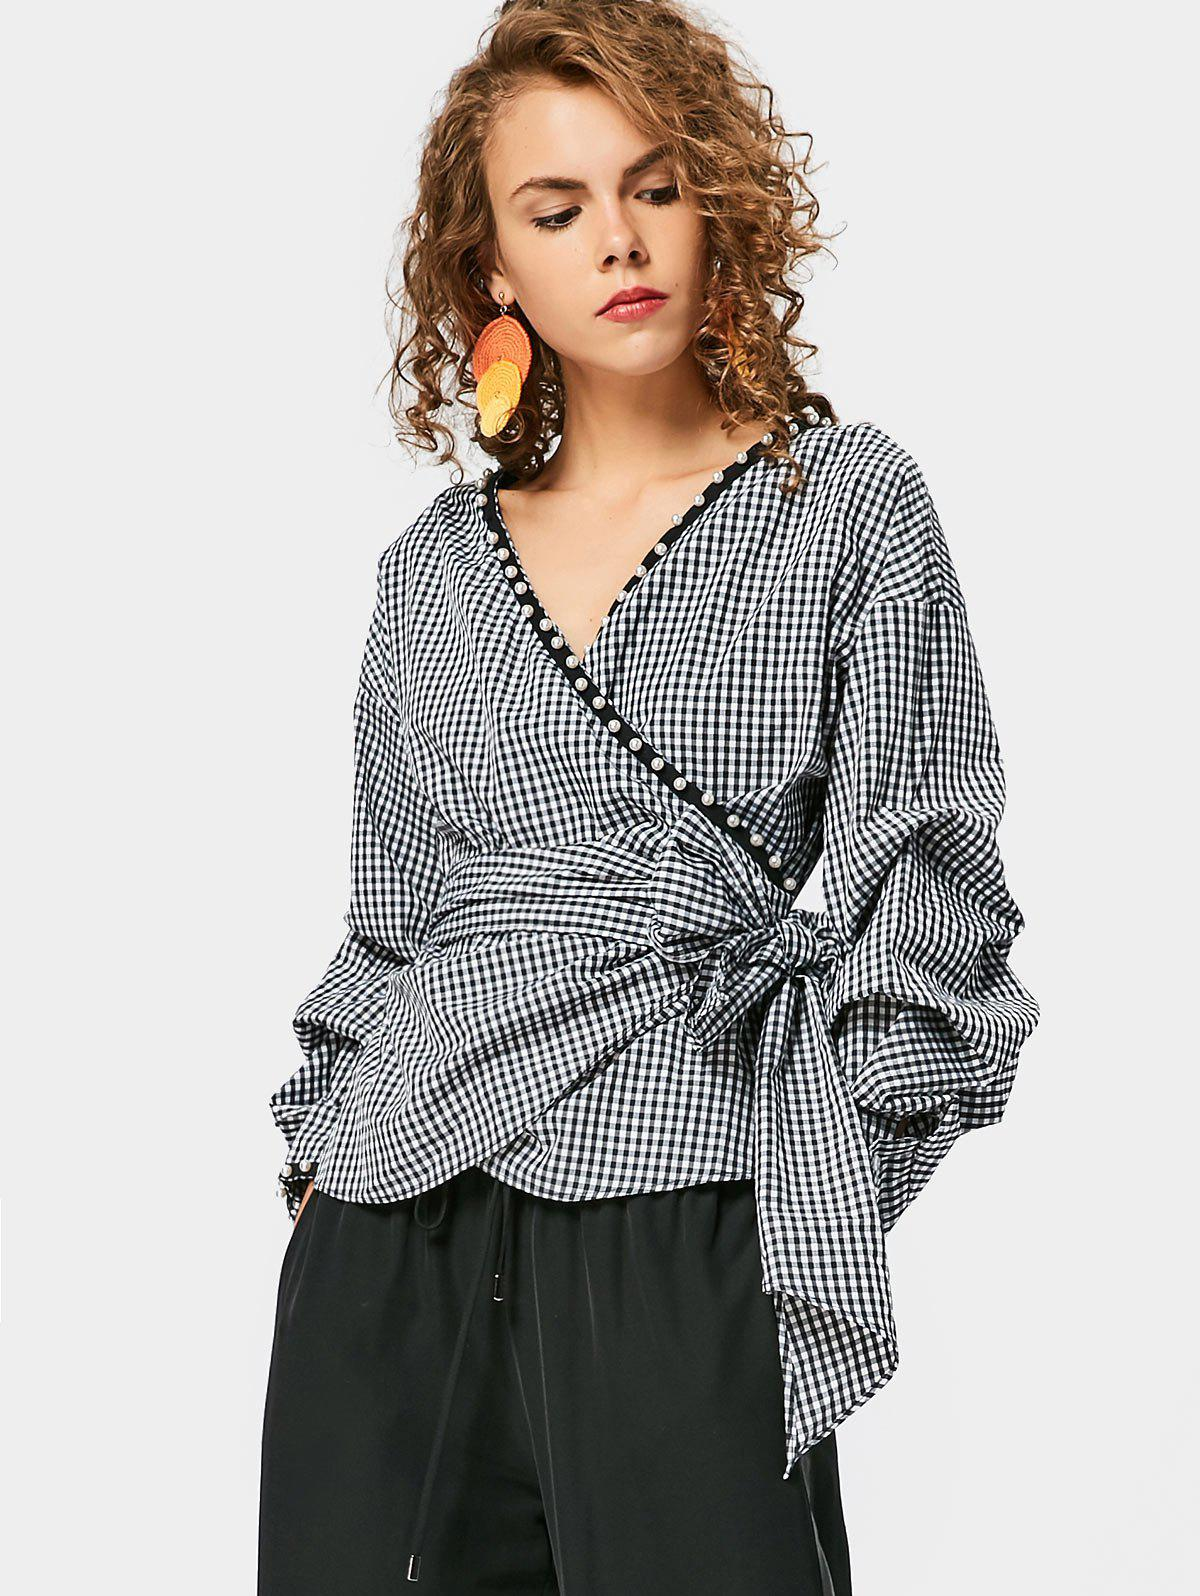 Wrap Checked Faux Pearl BlouseWOMEN<br><br>Size: M; Color: CHECKED; Material: Cotton,Polyester; Shirt Length: Regular; Sleeve Length: Full; Collar: V-Neck; Pattern Type: Plaid; Embellishment: Embroidery; Style: Fashion; Seasons: Autumn,Spring; Weight: 0.3450kg; Package Contents: 1 x Blouse; Occasion: Casual;